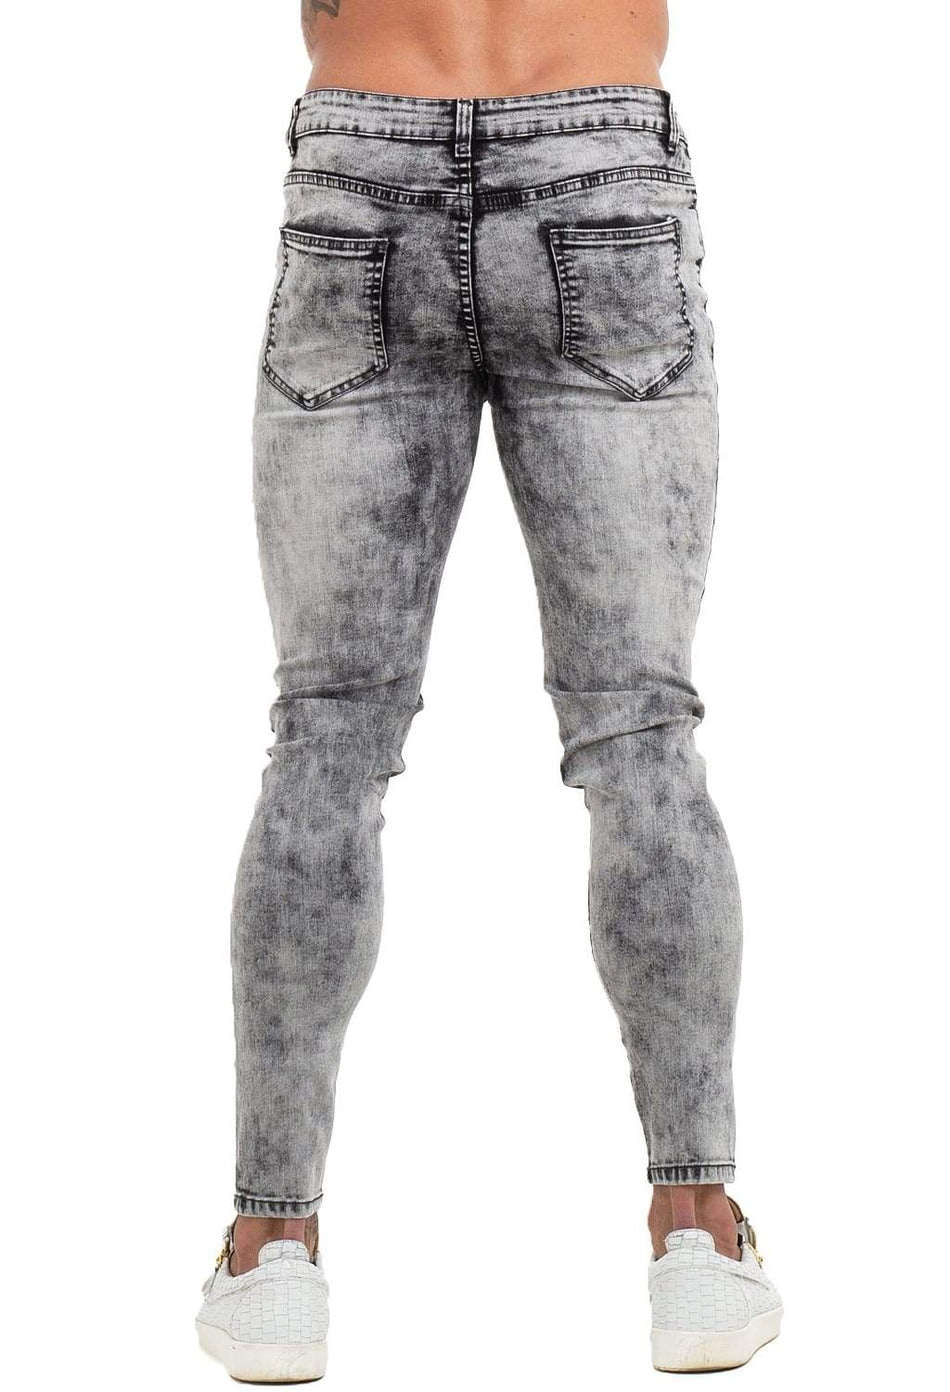 Ripped & Repaired Spray On Jeans - Stone Wash Grey - Maison